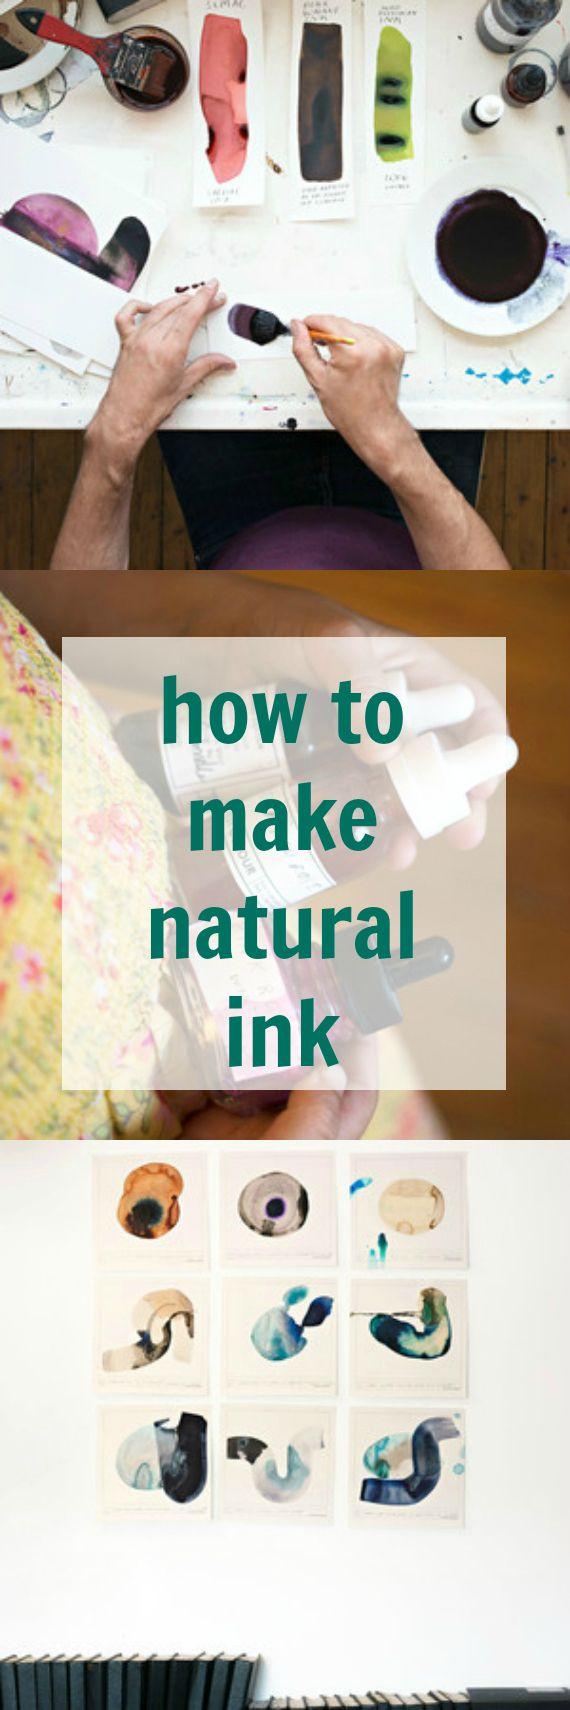 Learn how one artists uses materials gathered from nature to make his own ink -- then give it a try on your own. It'll completely change your crafting experience.